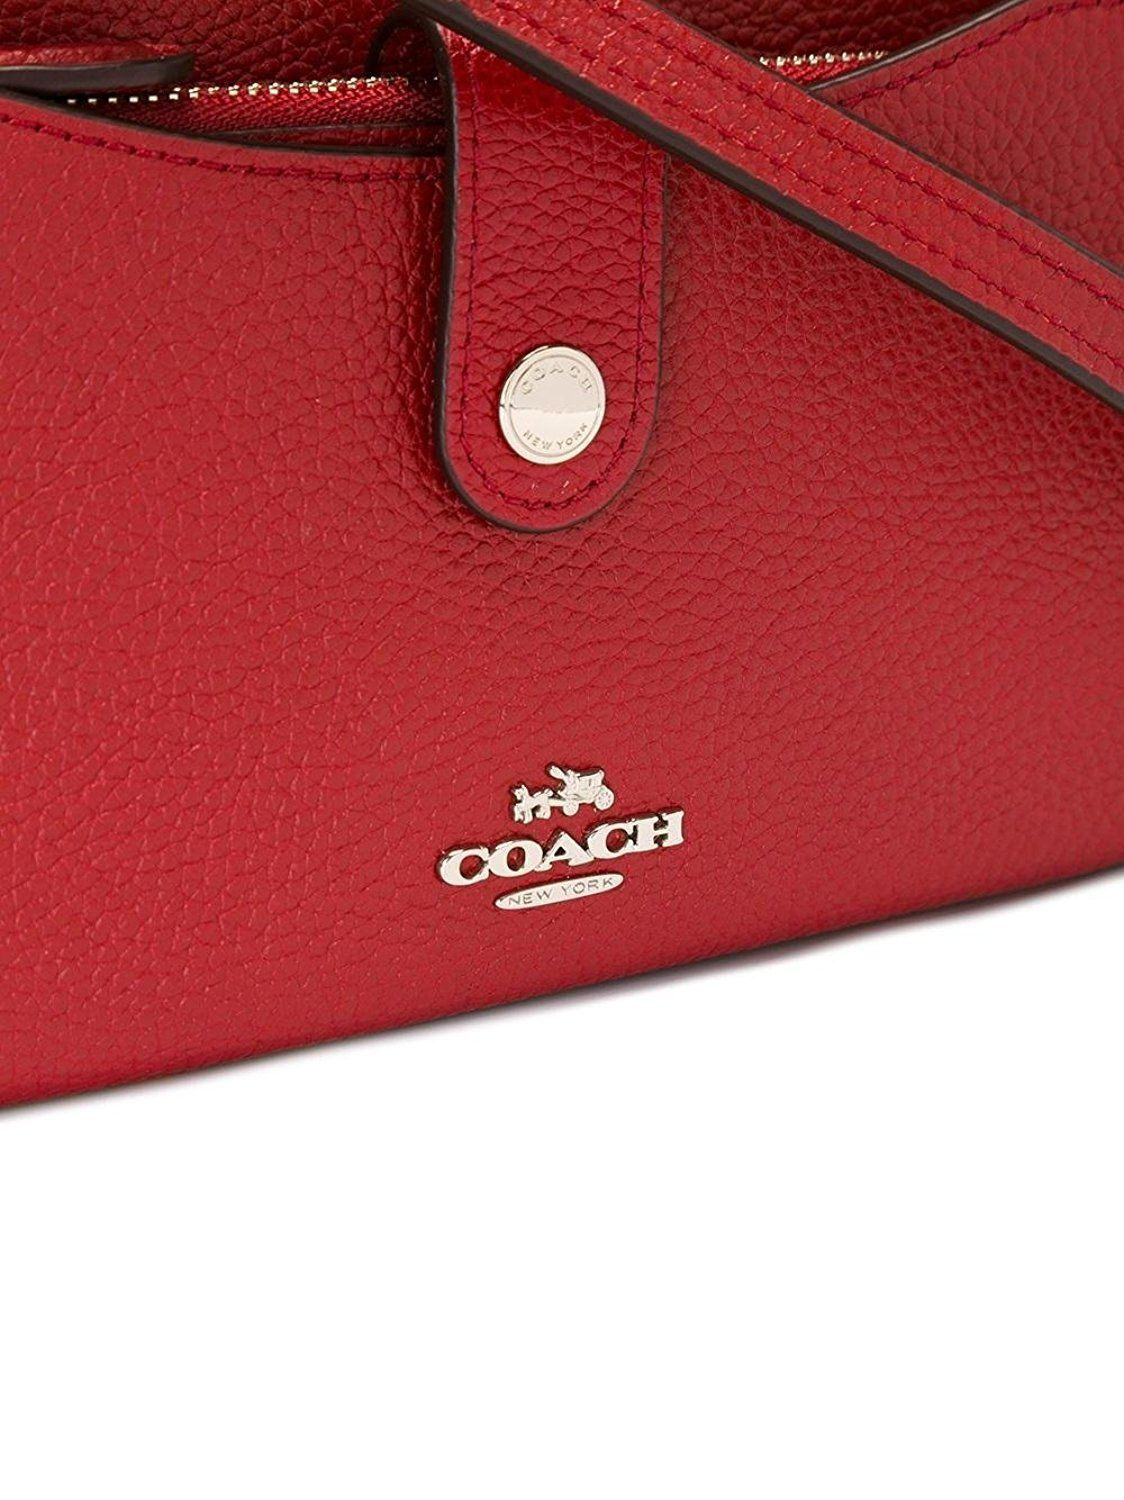 Coach Pebble Pop Up Color Red Currant Crossbody Wristlet 53529 Shoes